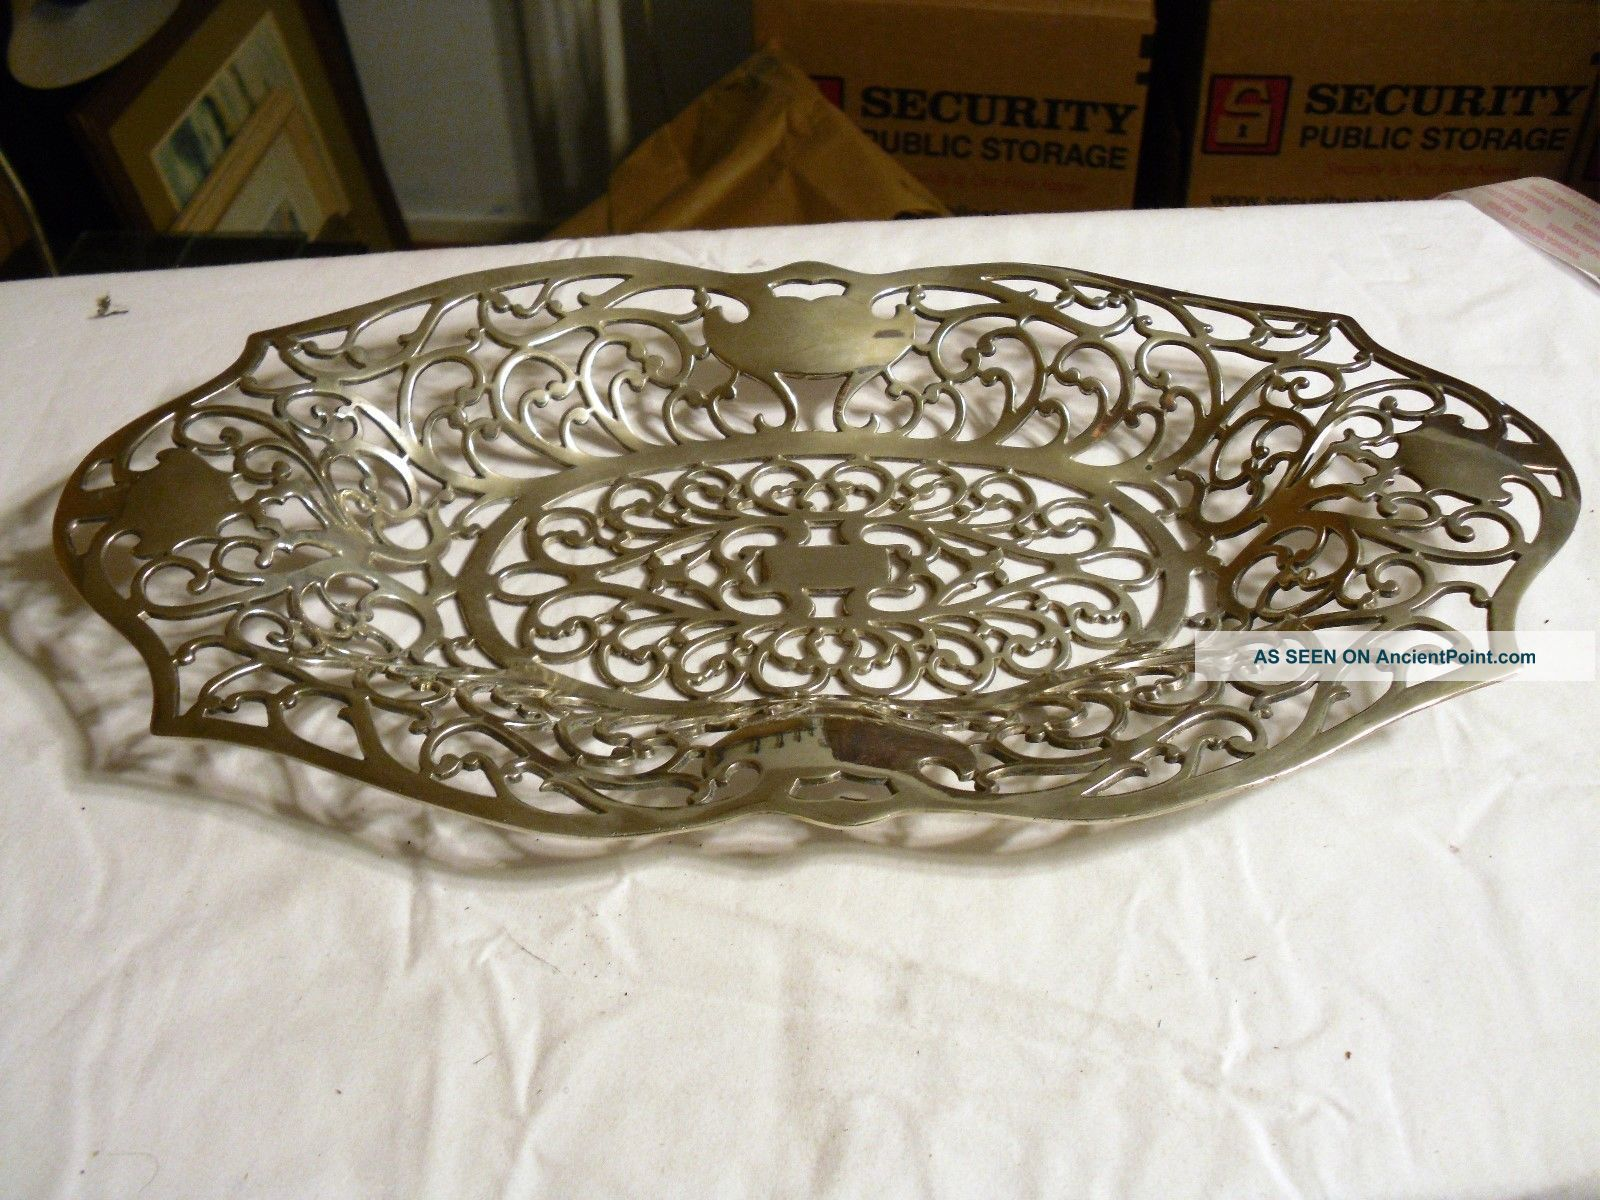 Nickle Silver Plate Reticulated Basket/tray 2255 Vintage Apollo Quadruple Plate Baskets photo